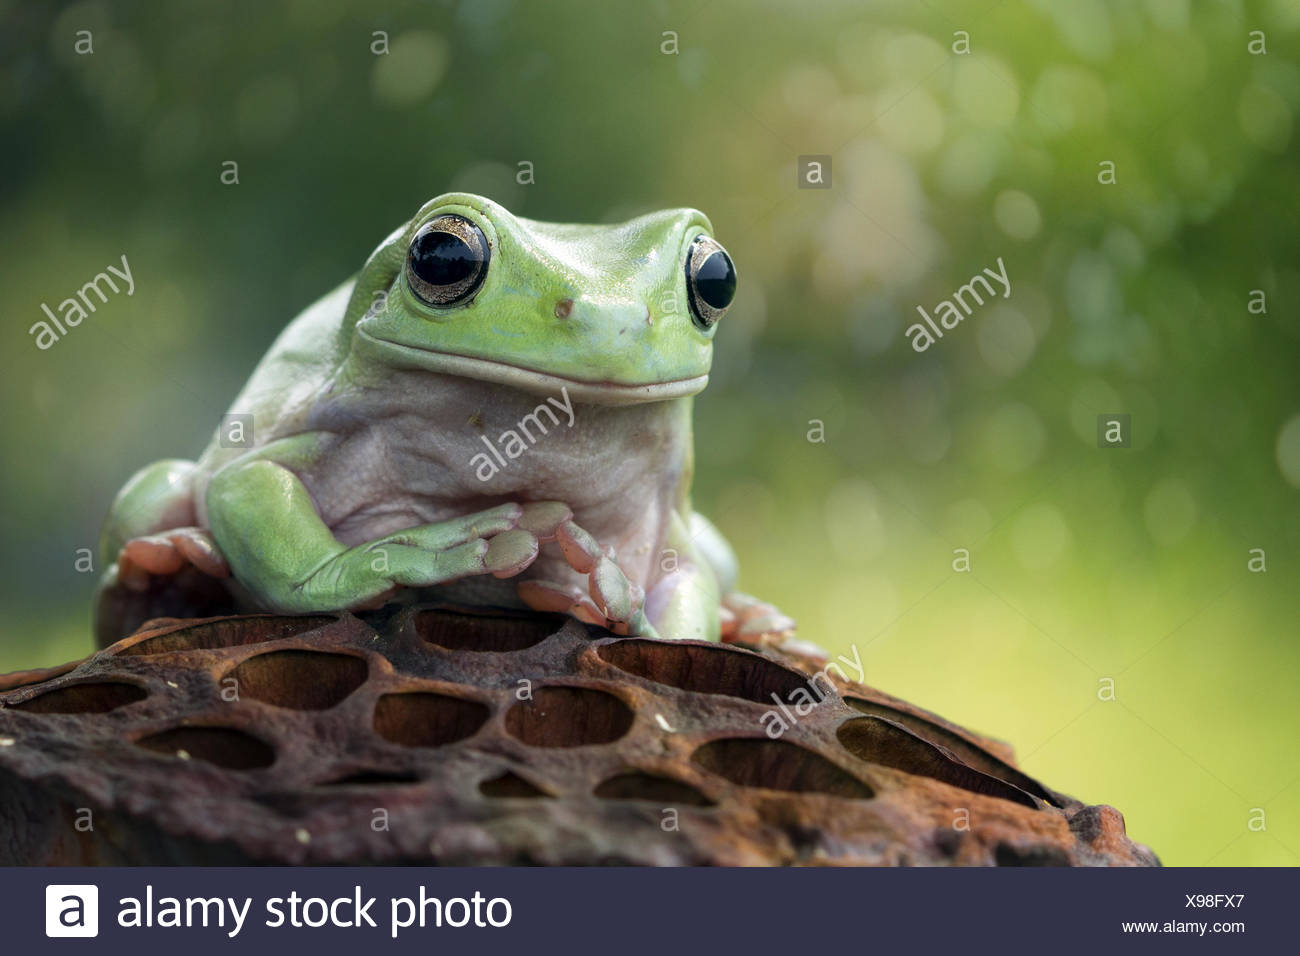 Frog sitting on a dried lotus seed cup - Stock Image